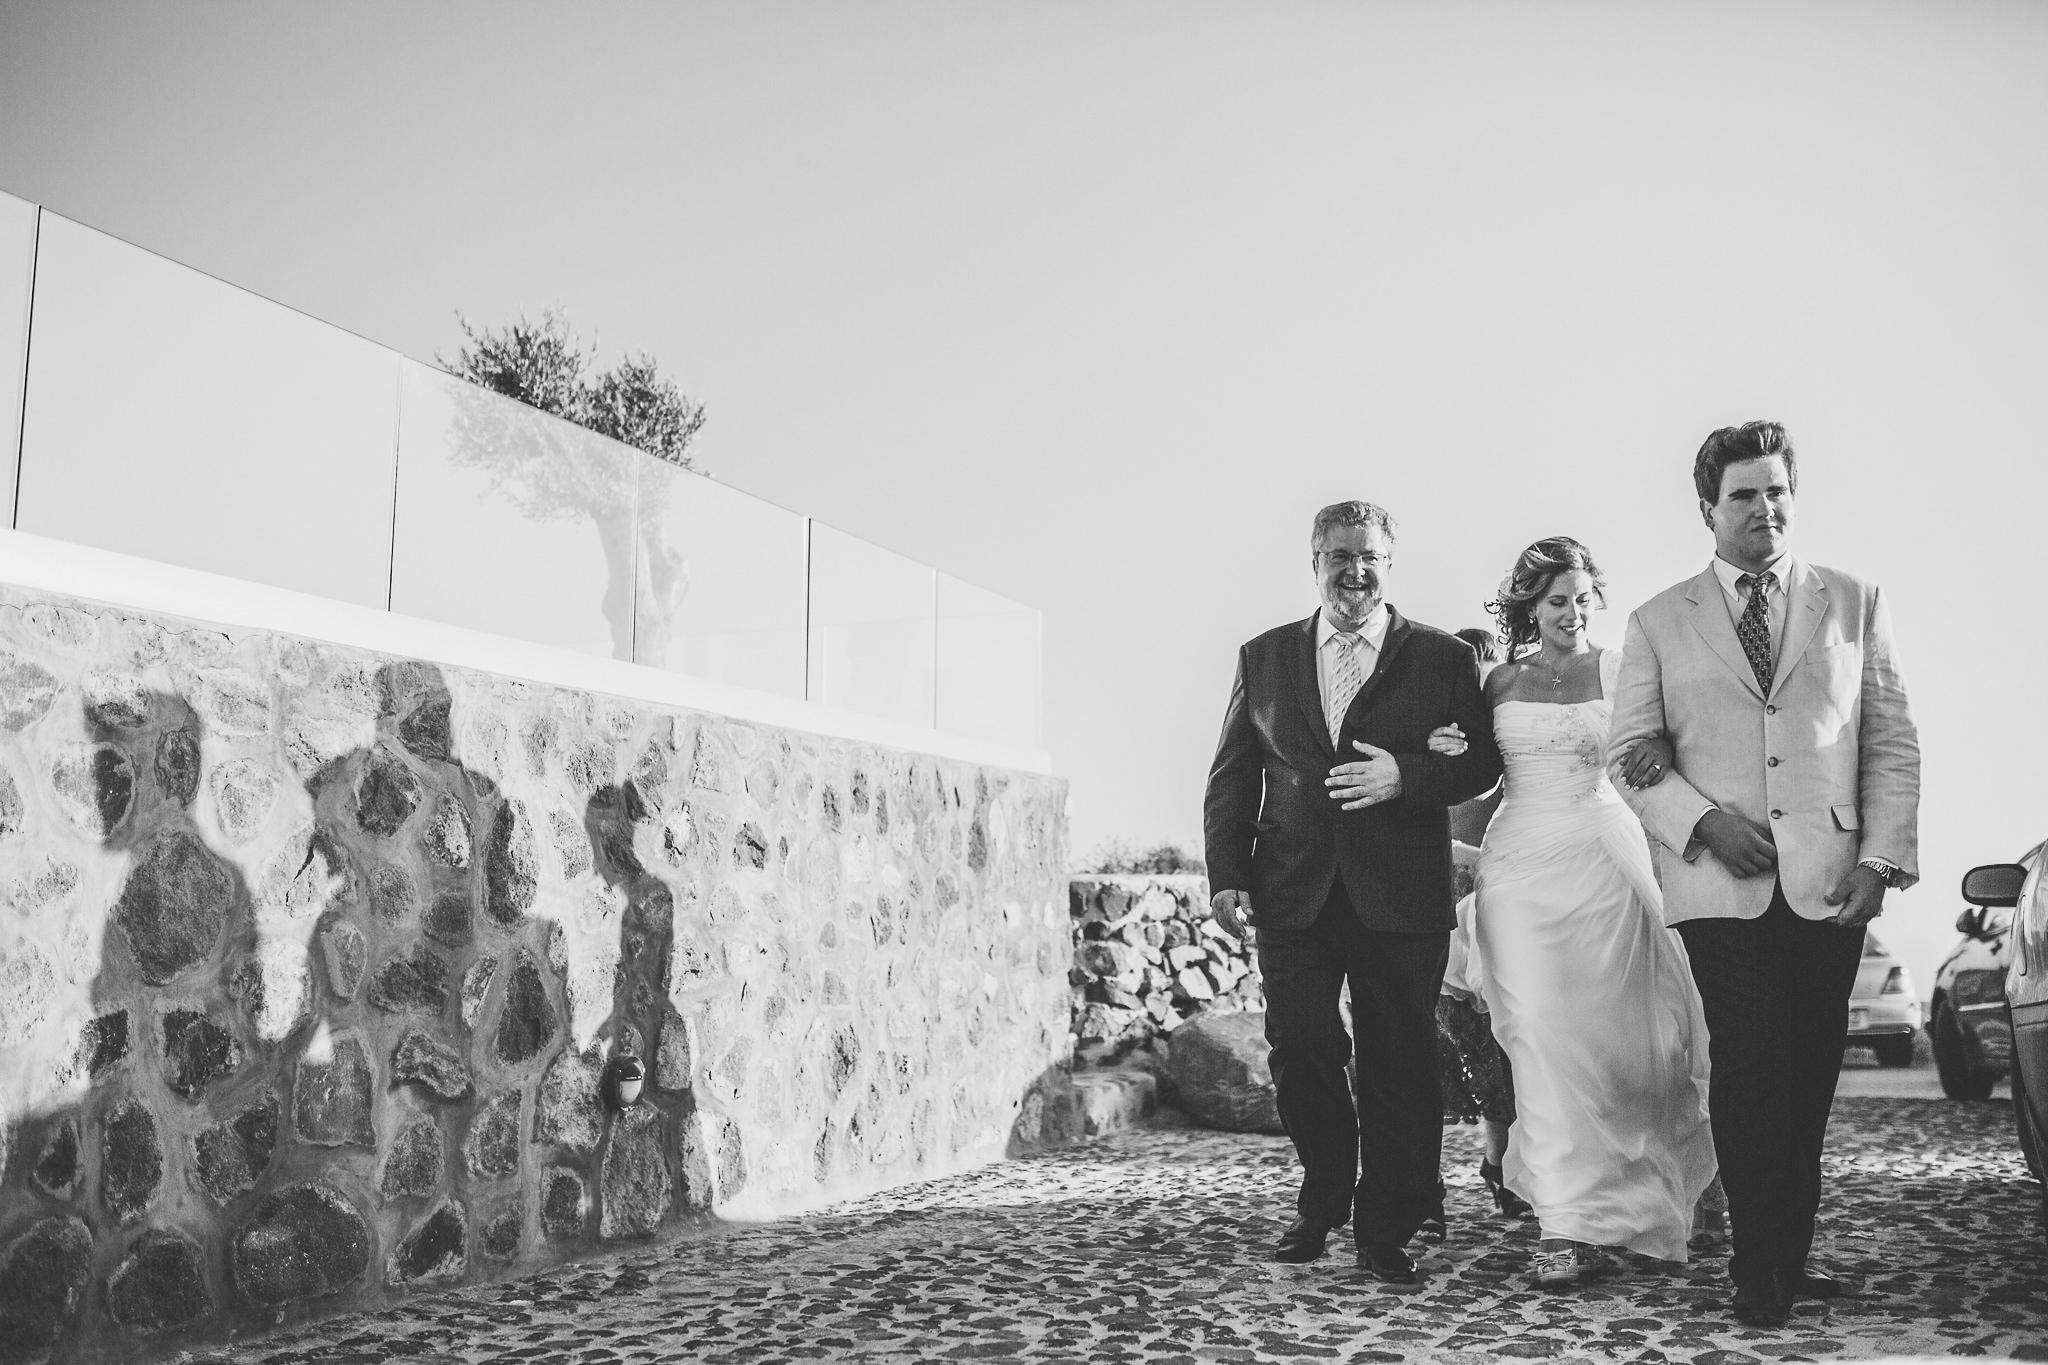 santorini-wedding-photographer-destination-90042